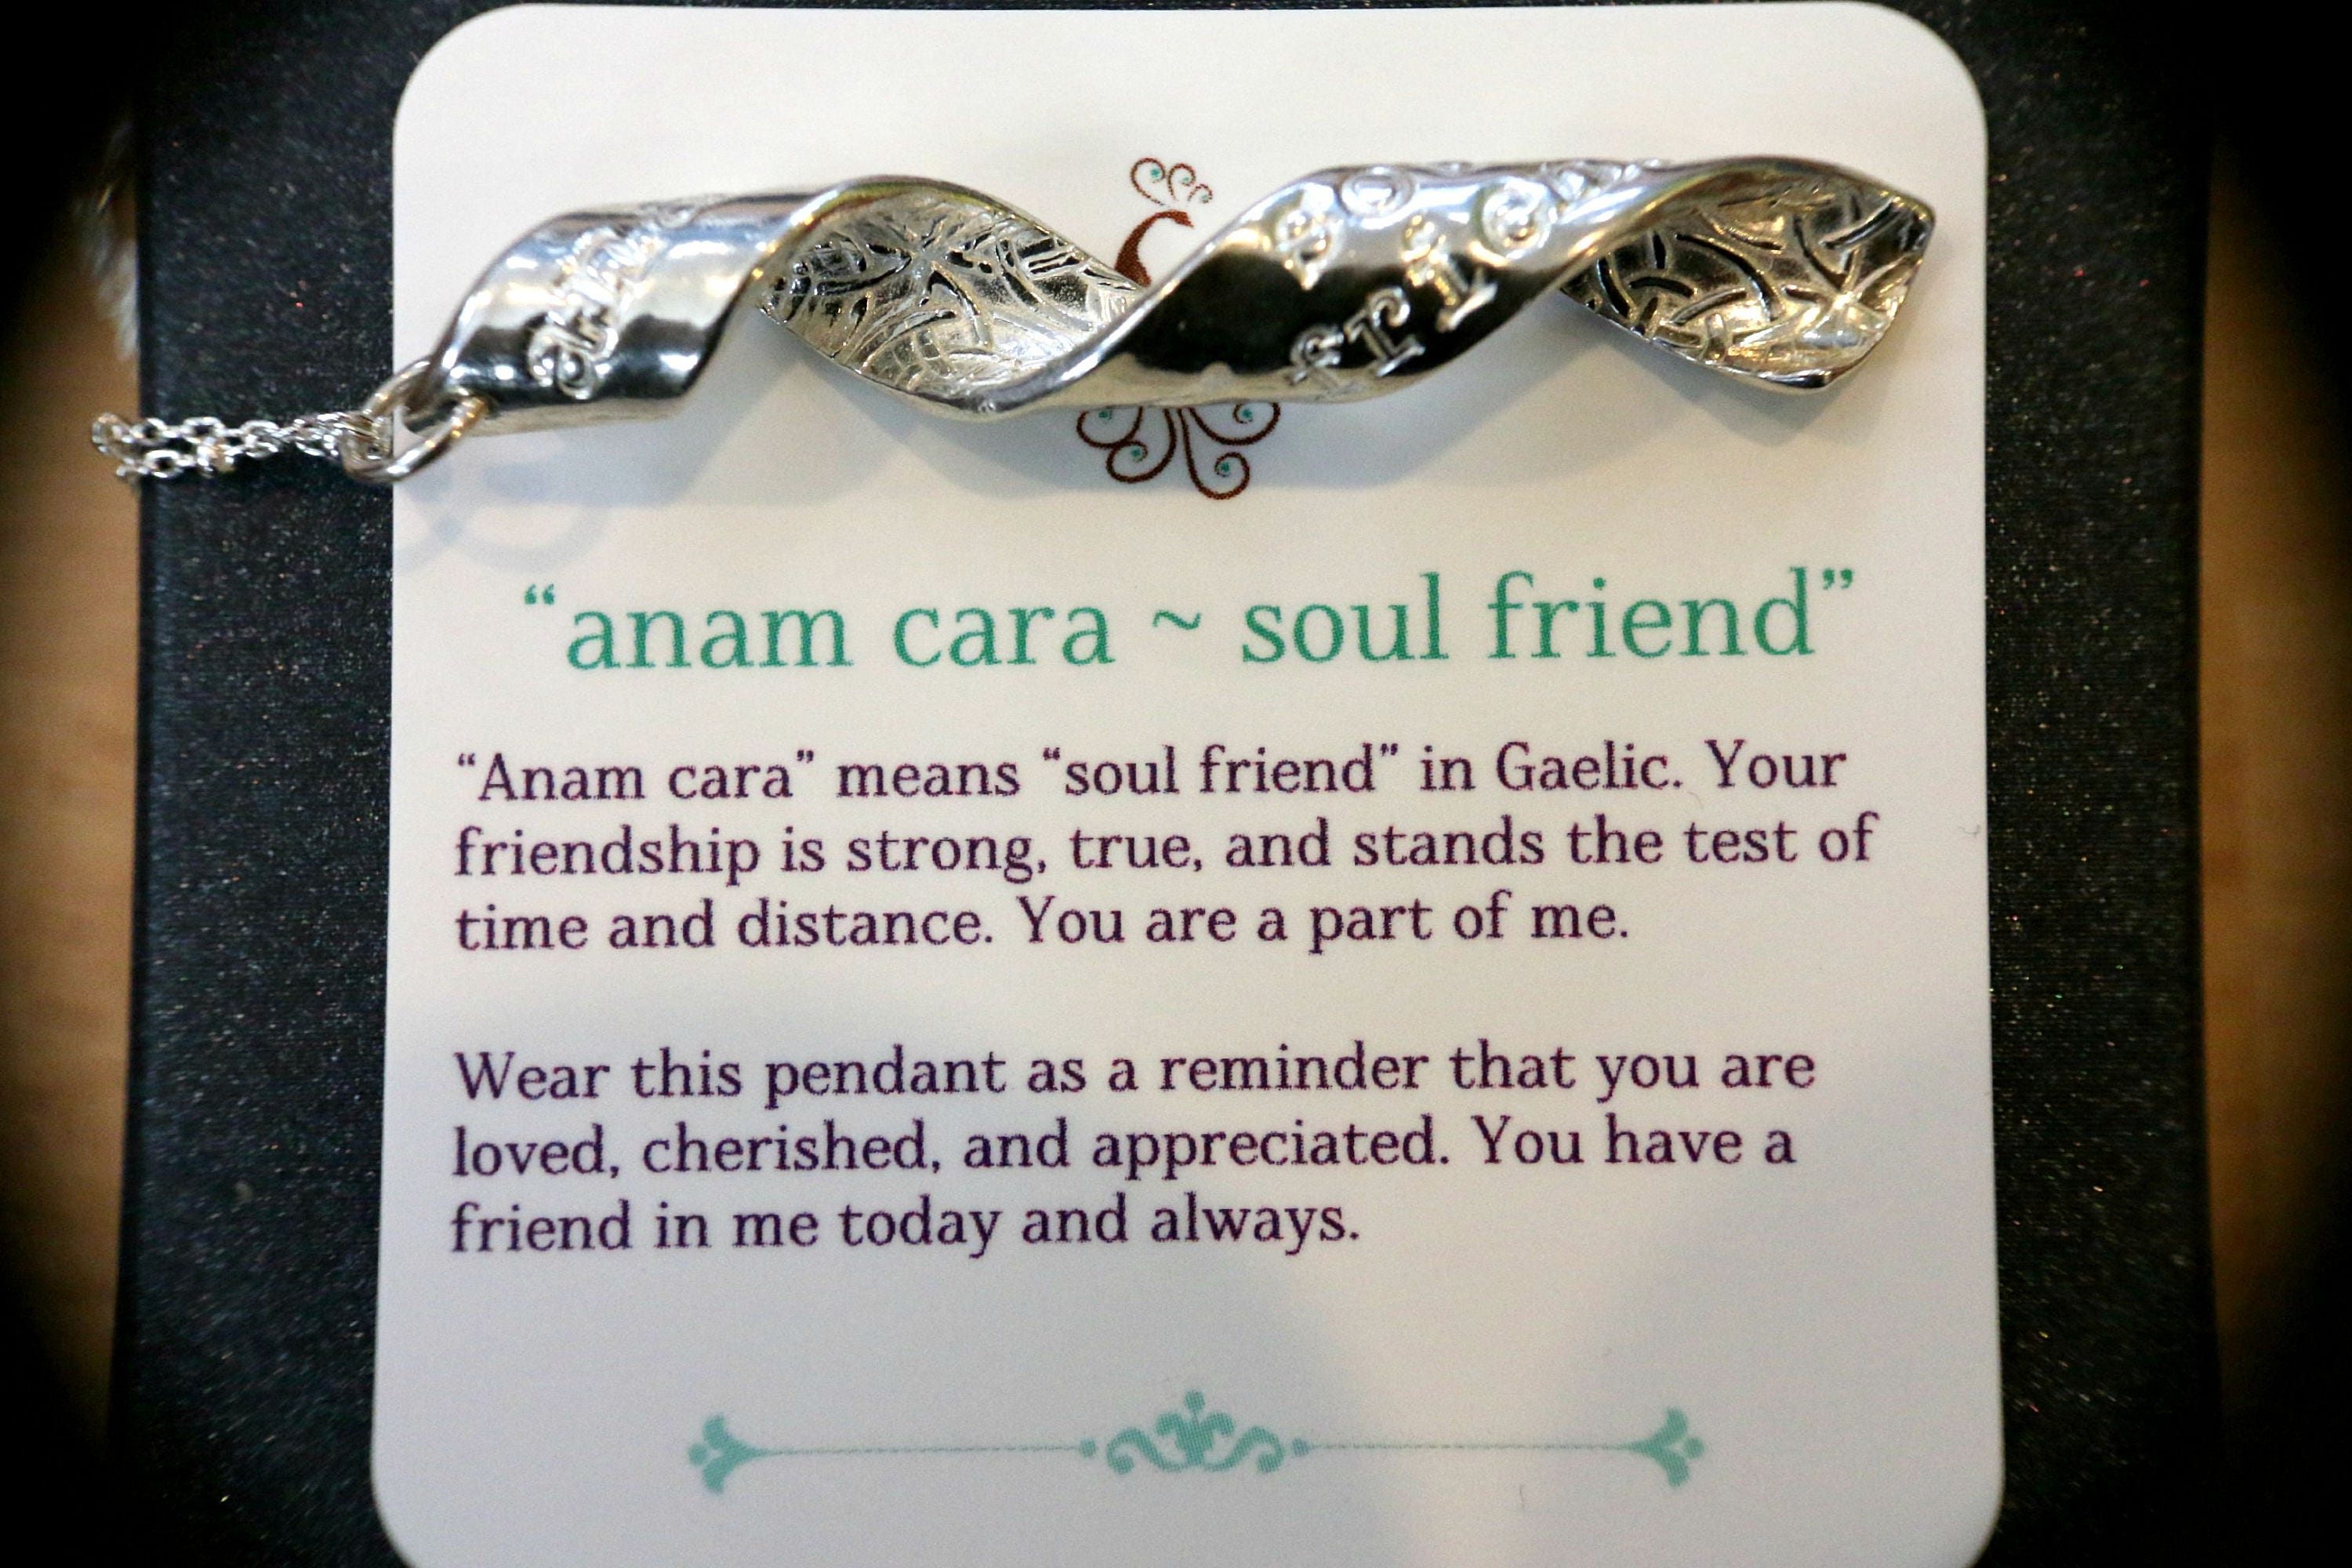 Anam cara soul friend an inspiral pendant about friendship and love gallery photo gallery photo gallery photo mozeypictures Gallery